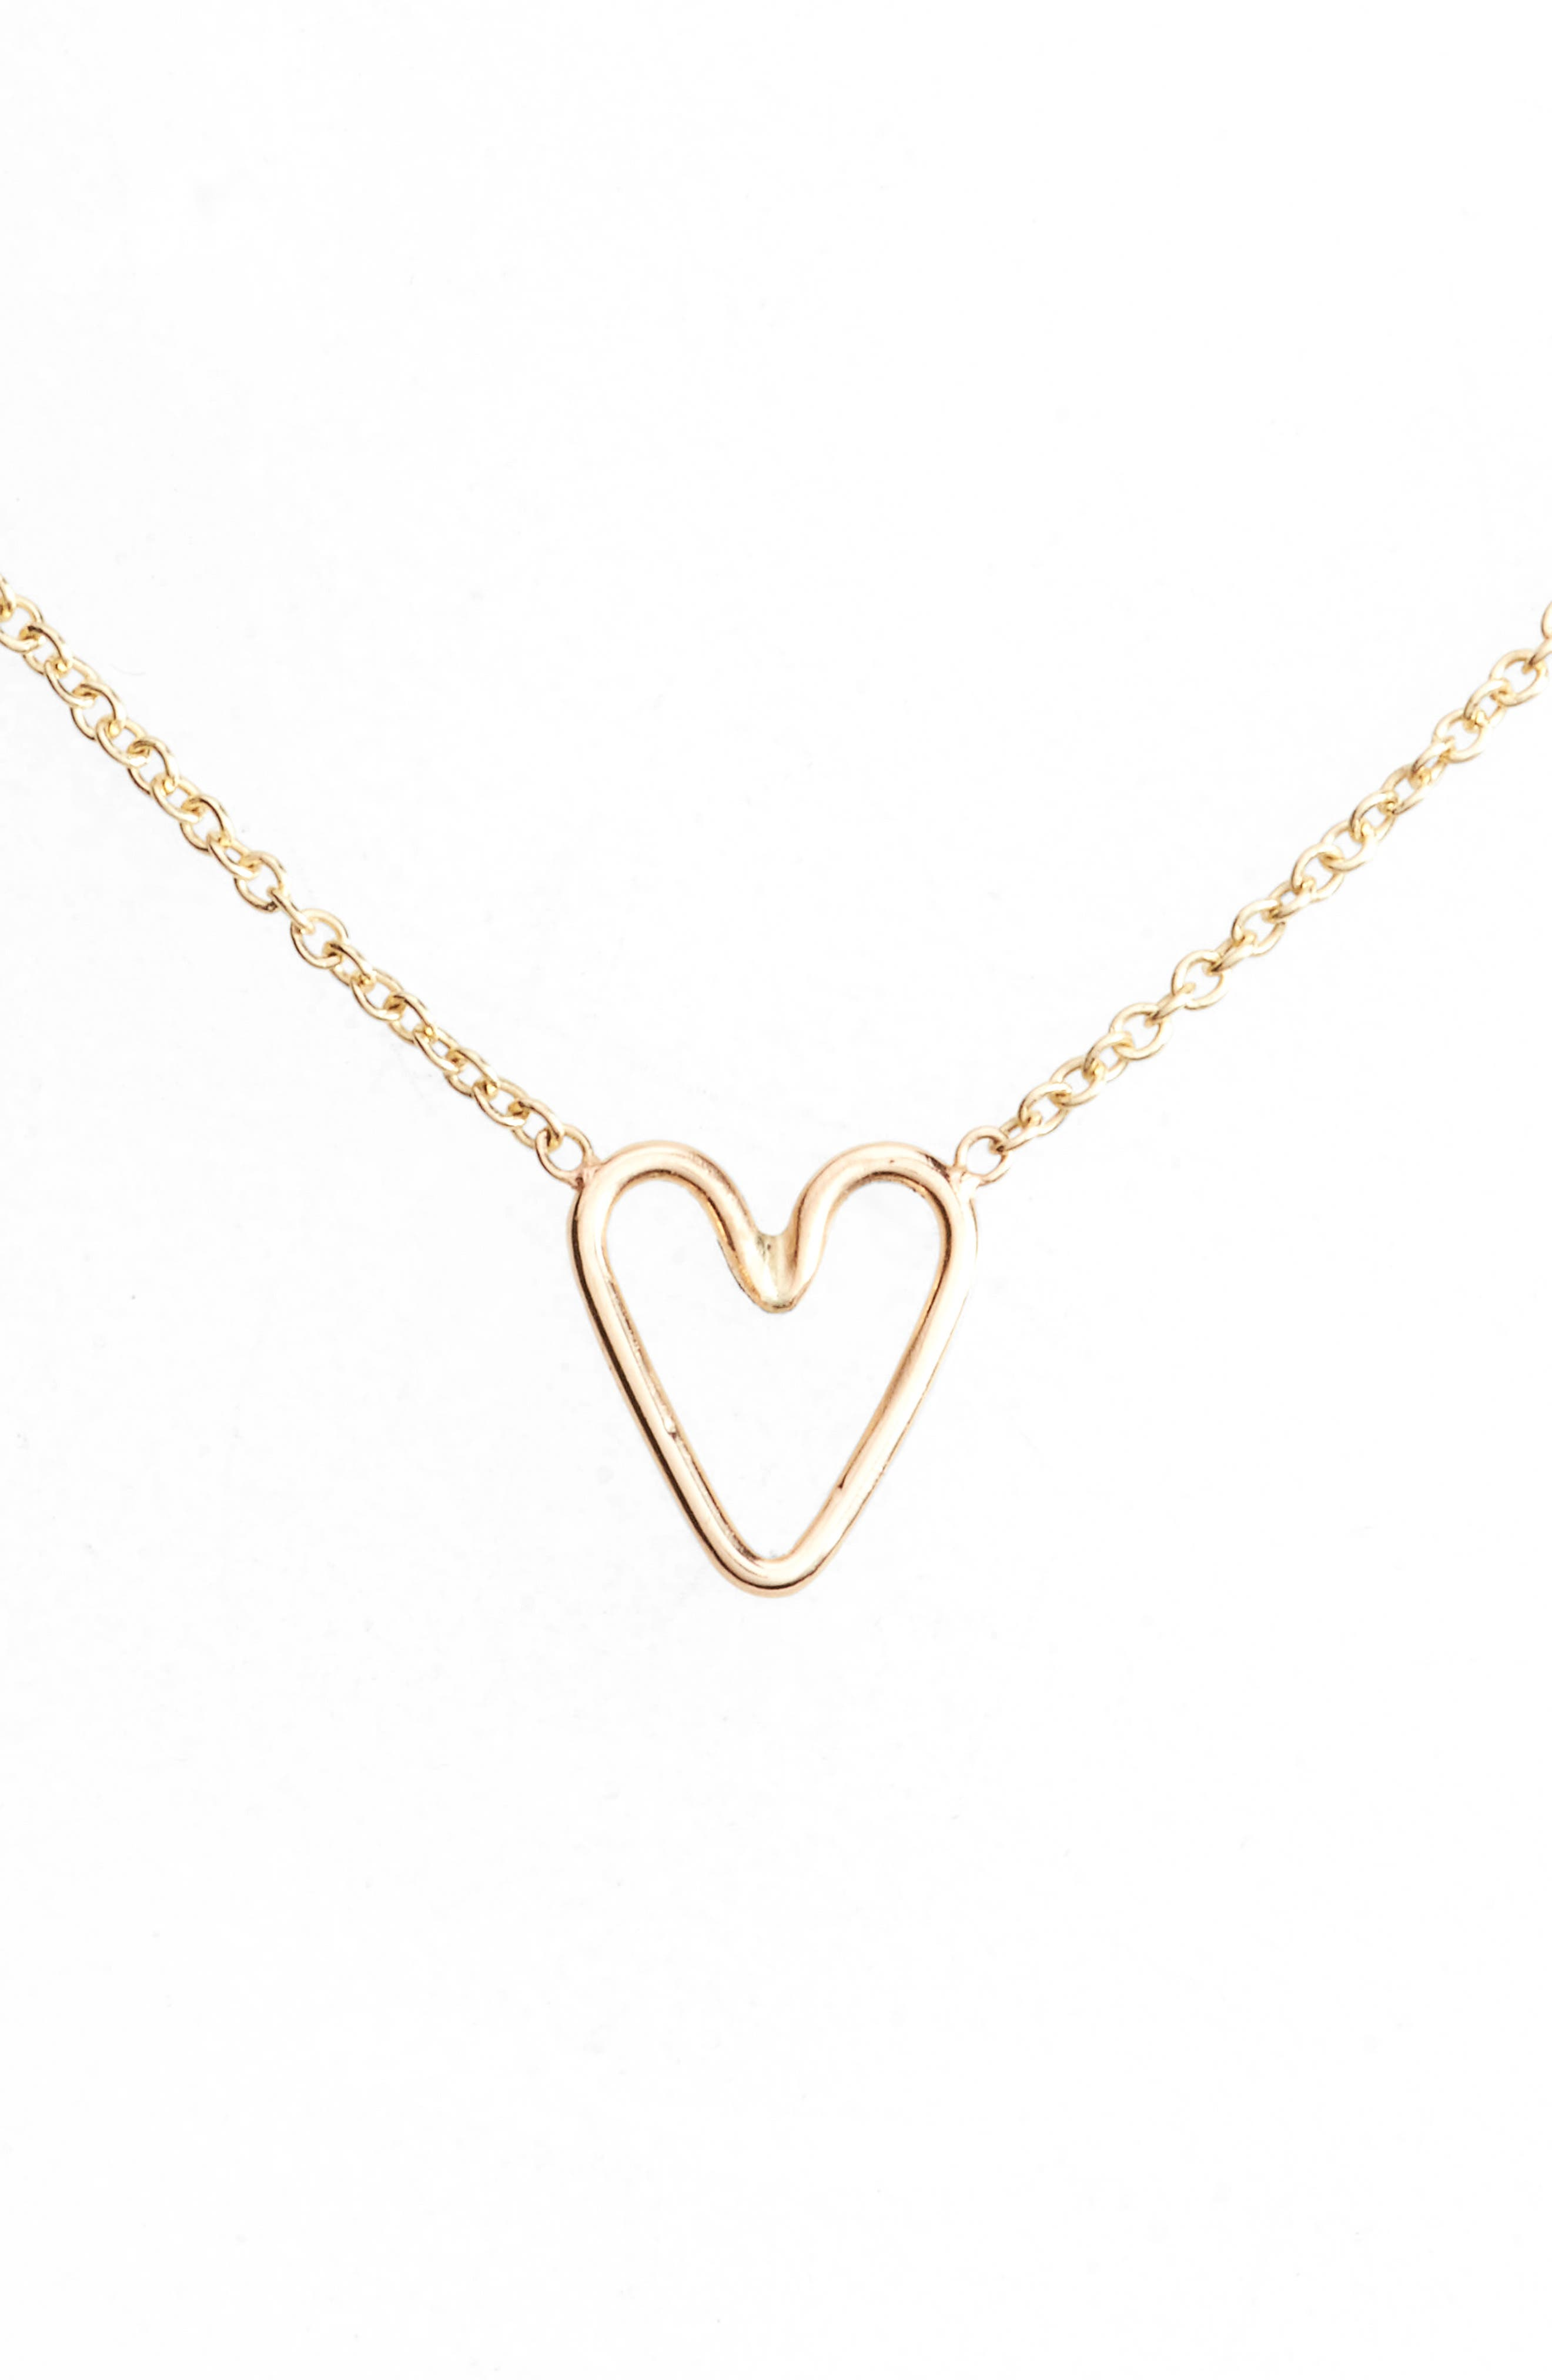 Zoë Chicco Tiny Open Heart Pendant Necklace